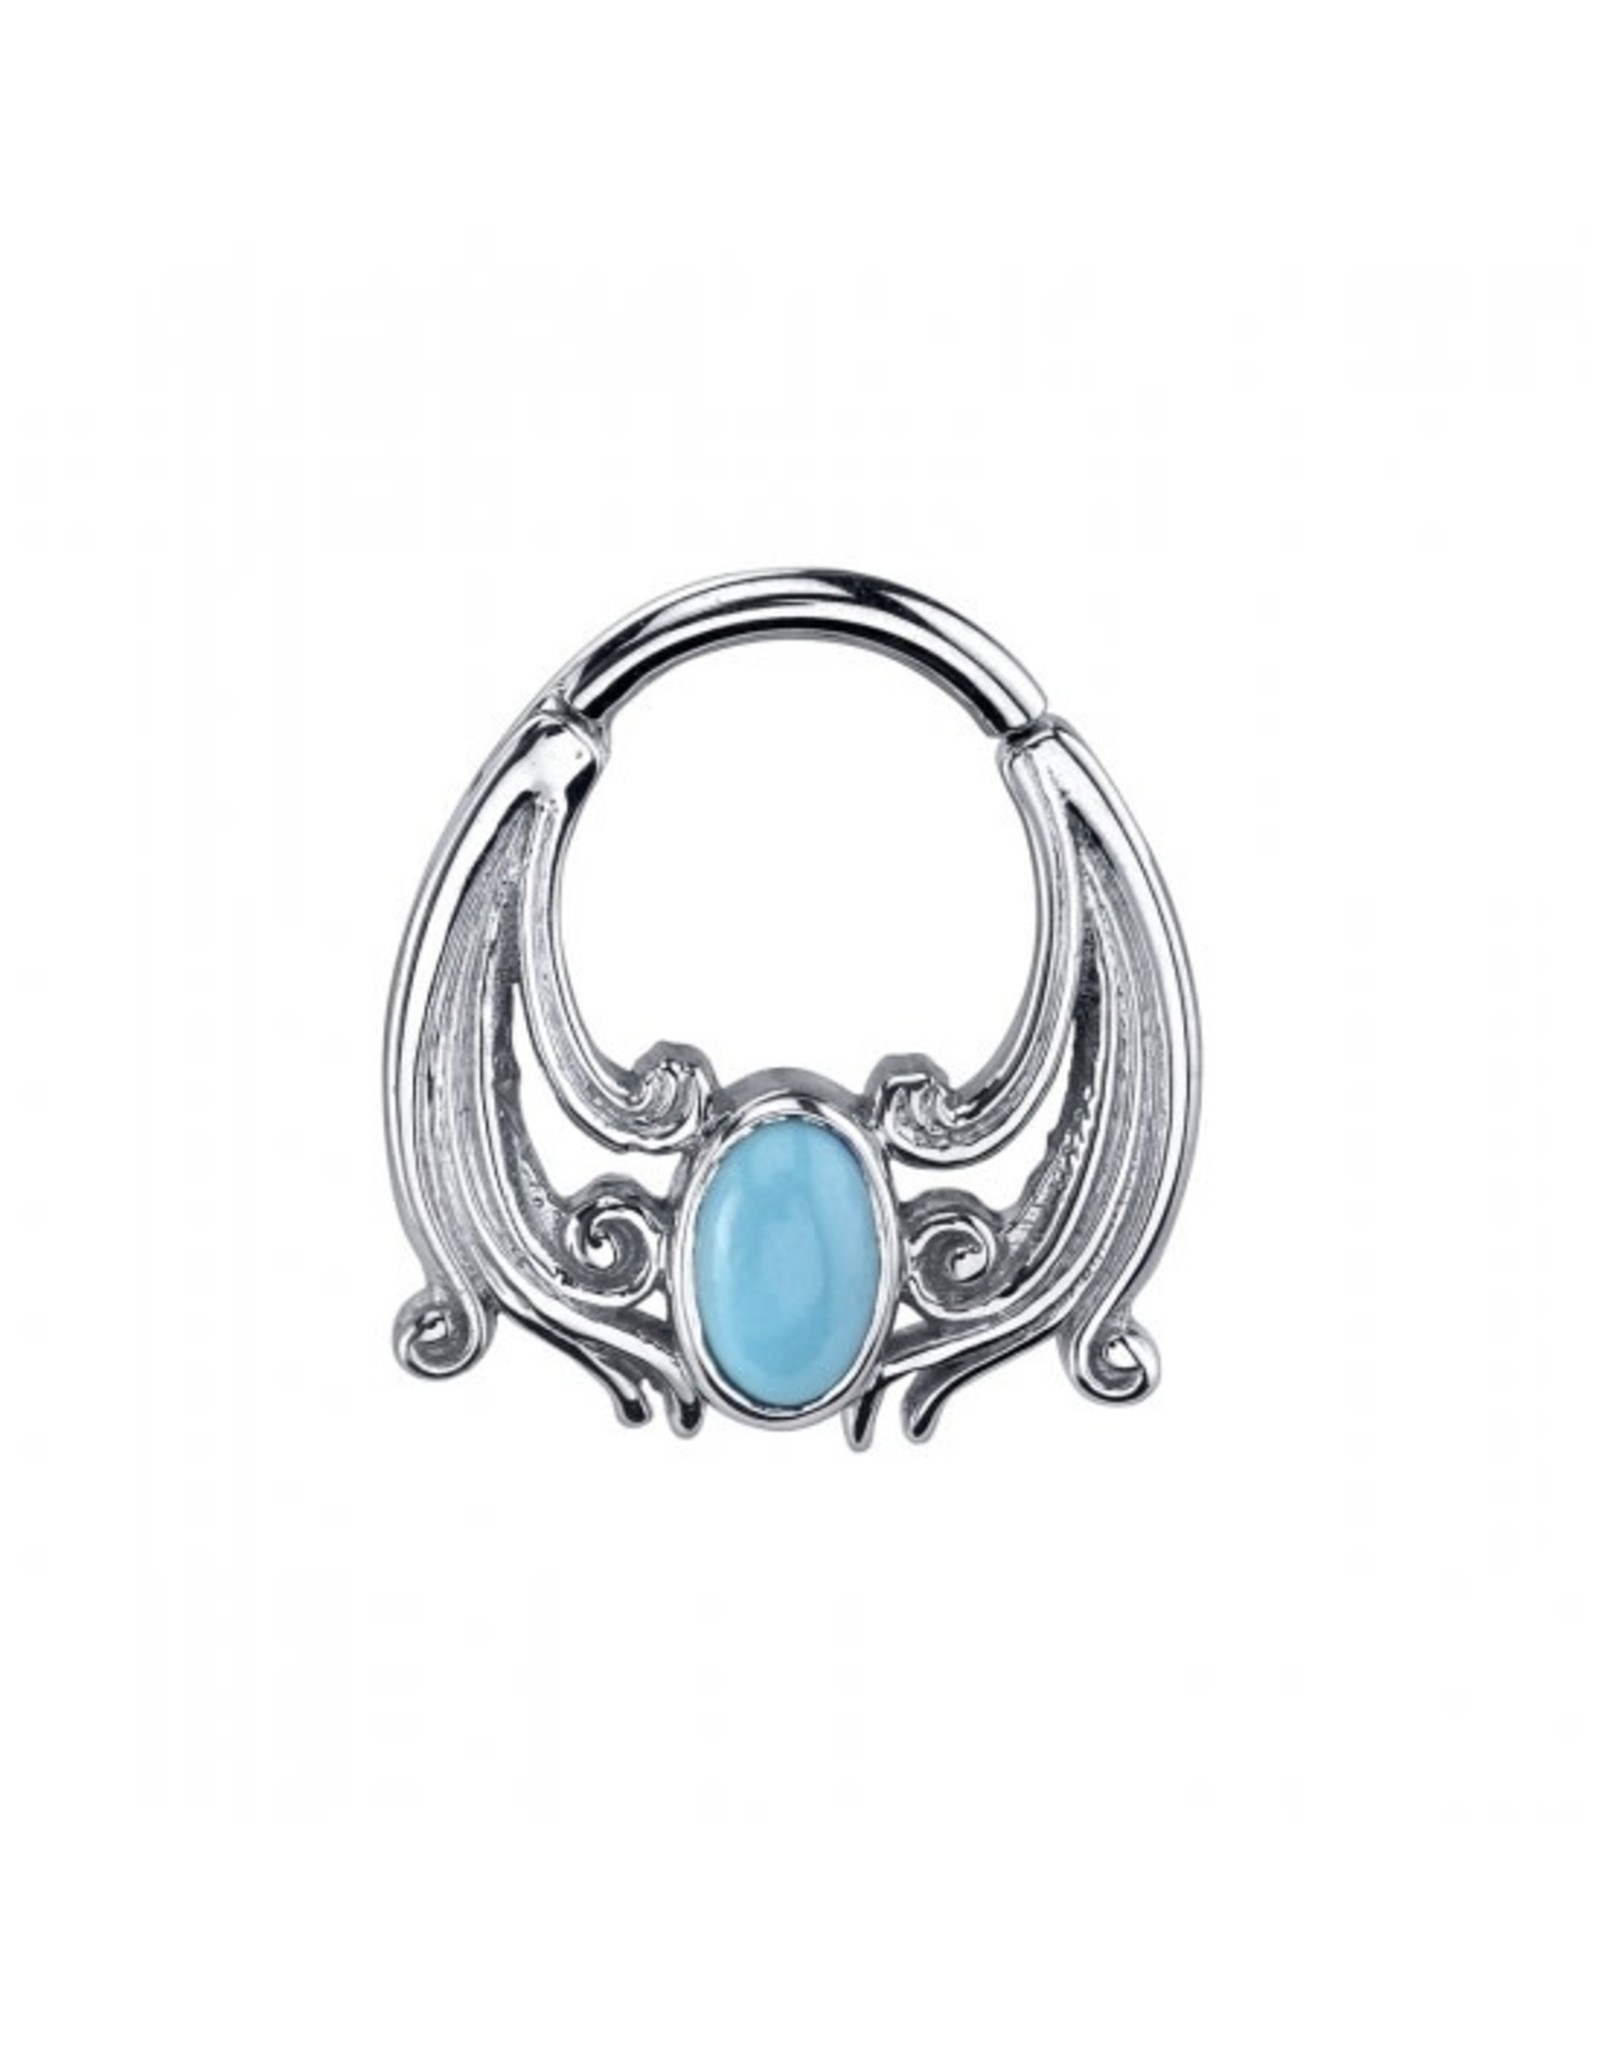 """BVLA BVLA 16g 5/16 white gold """"Skye"""" clicker with turquoise oval"""